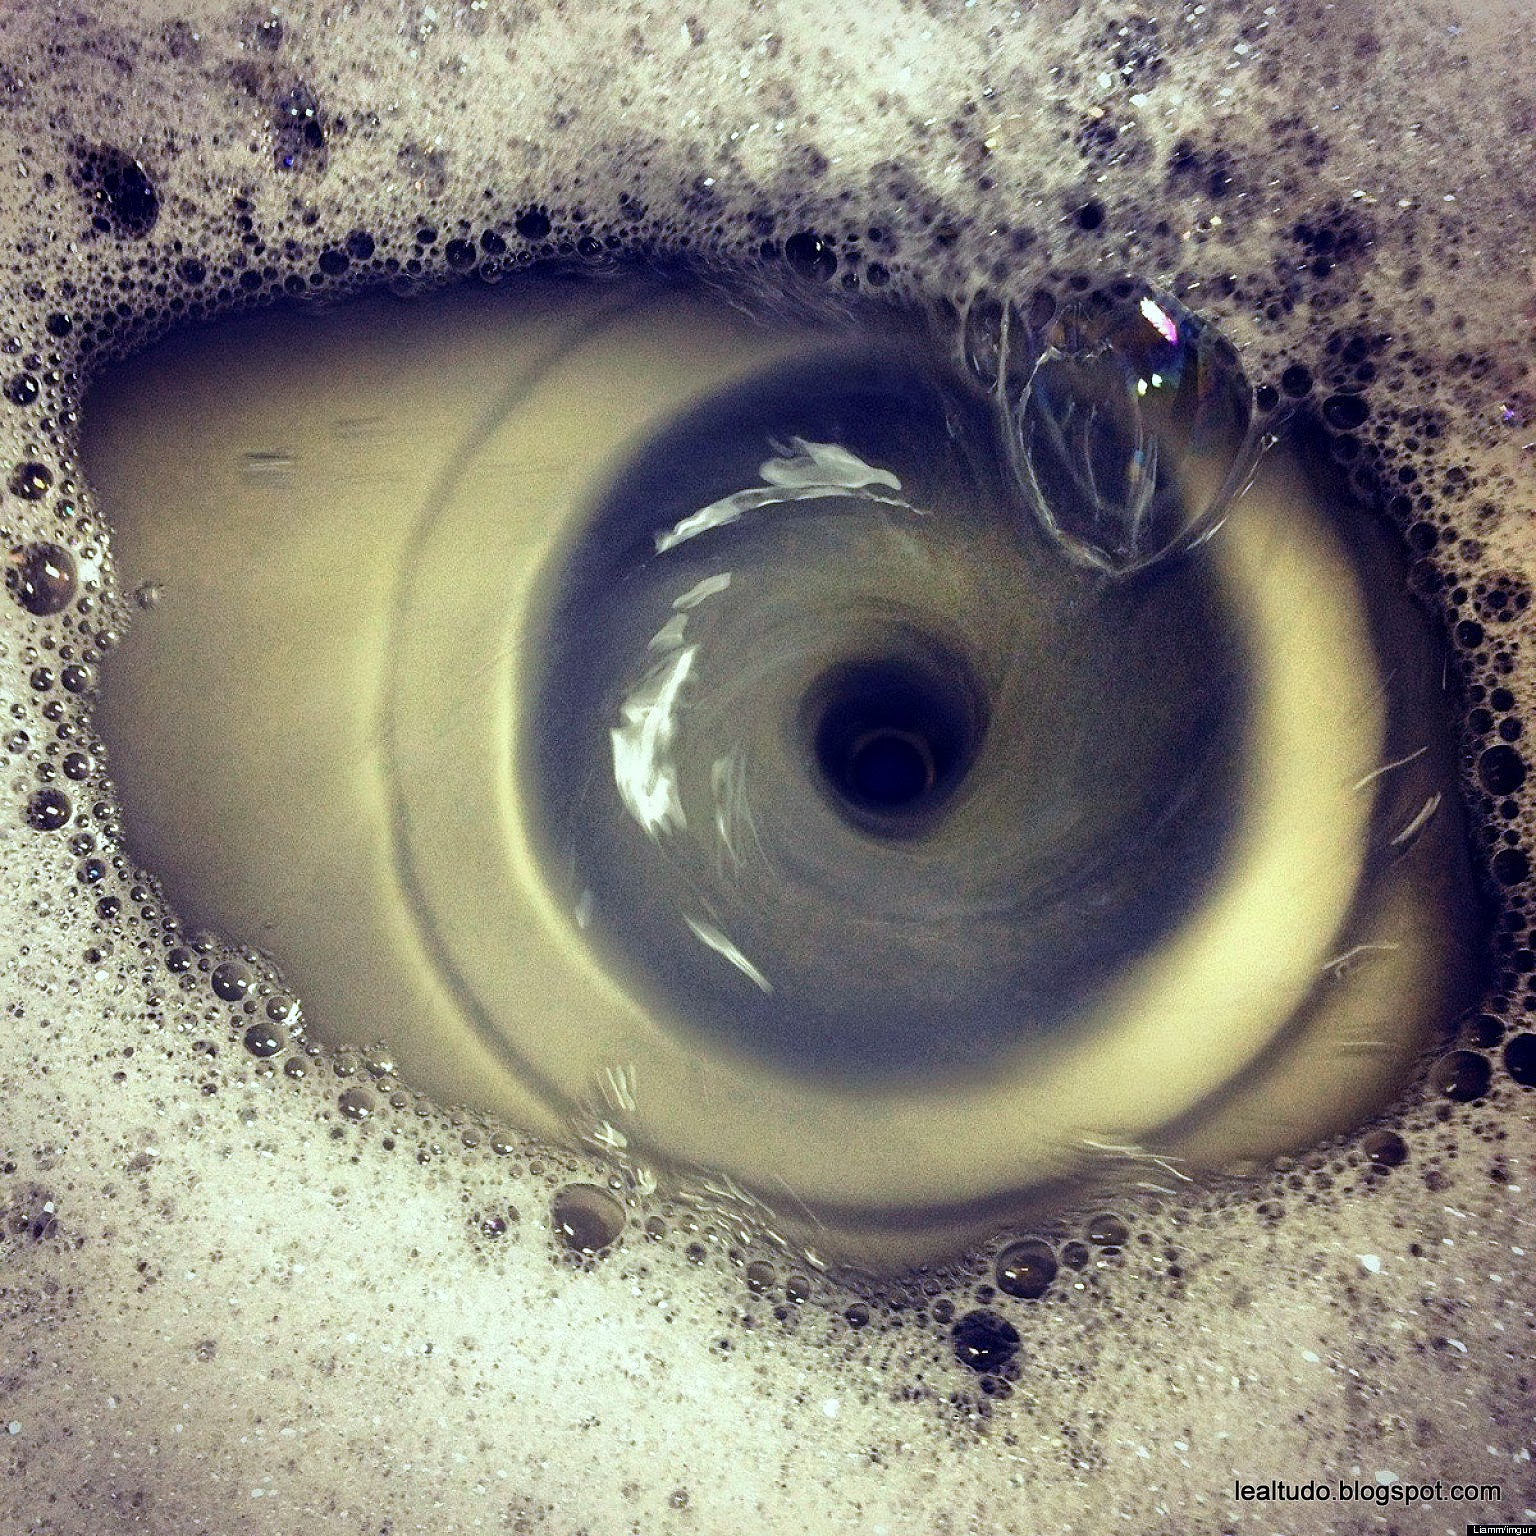 Sink Draining Eye Open Wide - Pia Escorrendo Olho Bem Aberto - Pareidolia-001